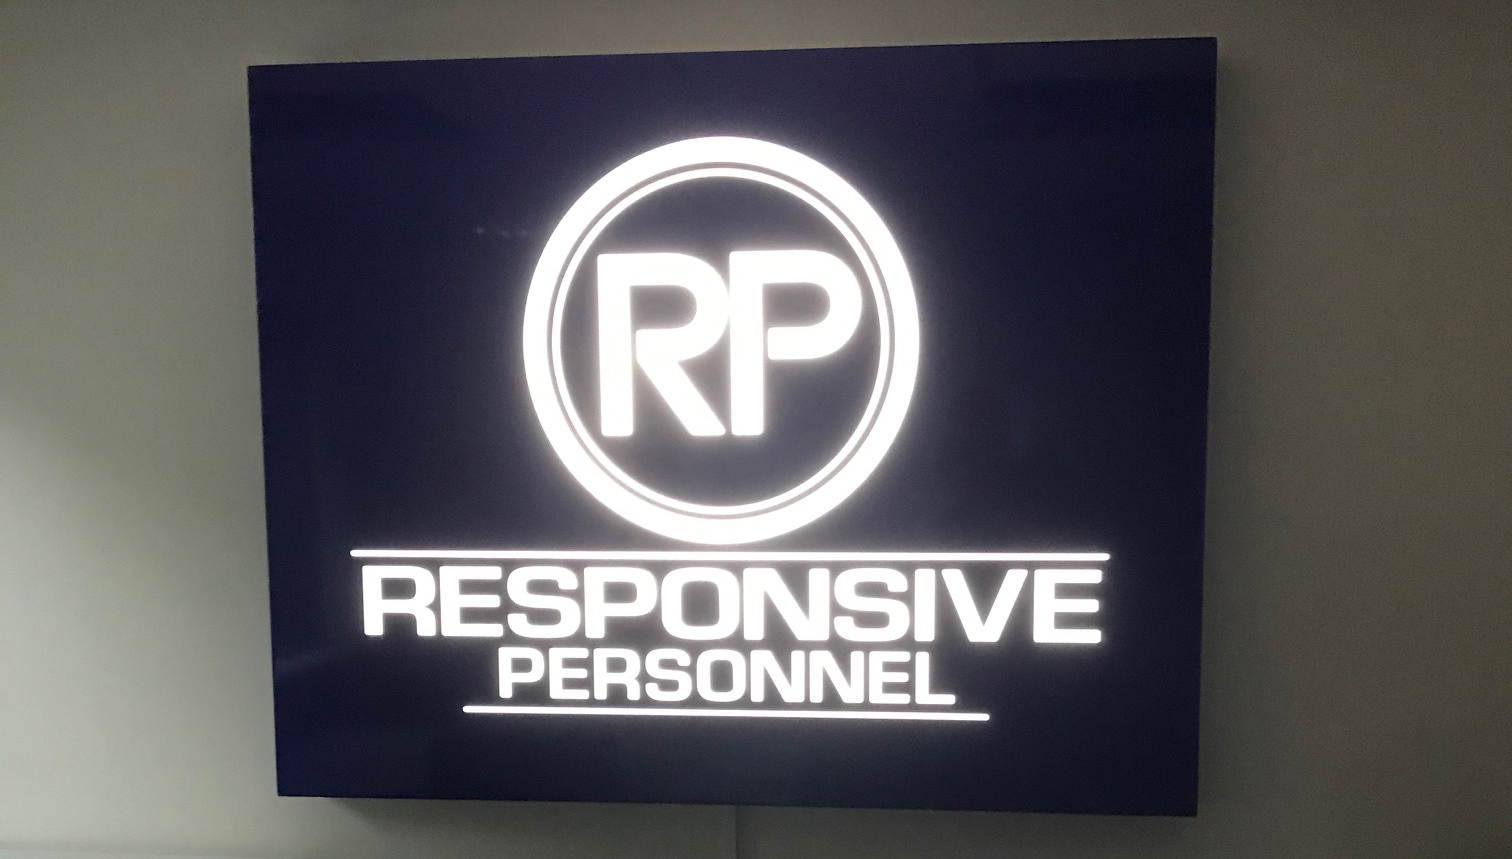 Responsive Personnel Internal Sign